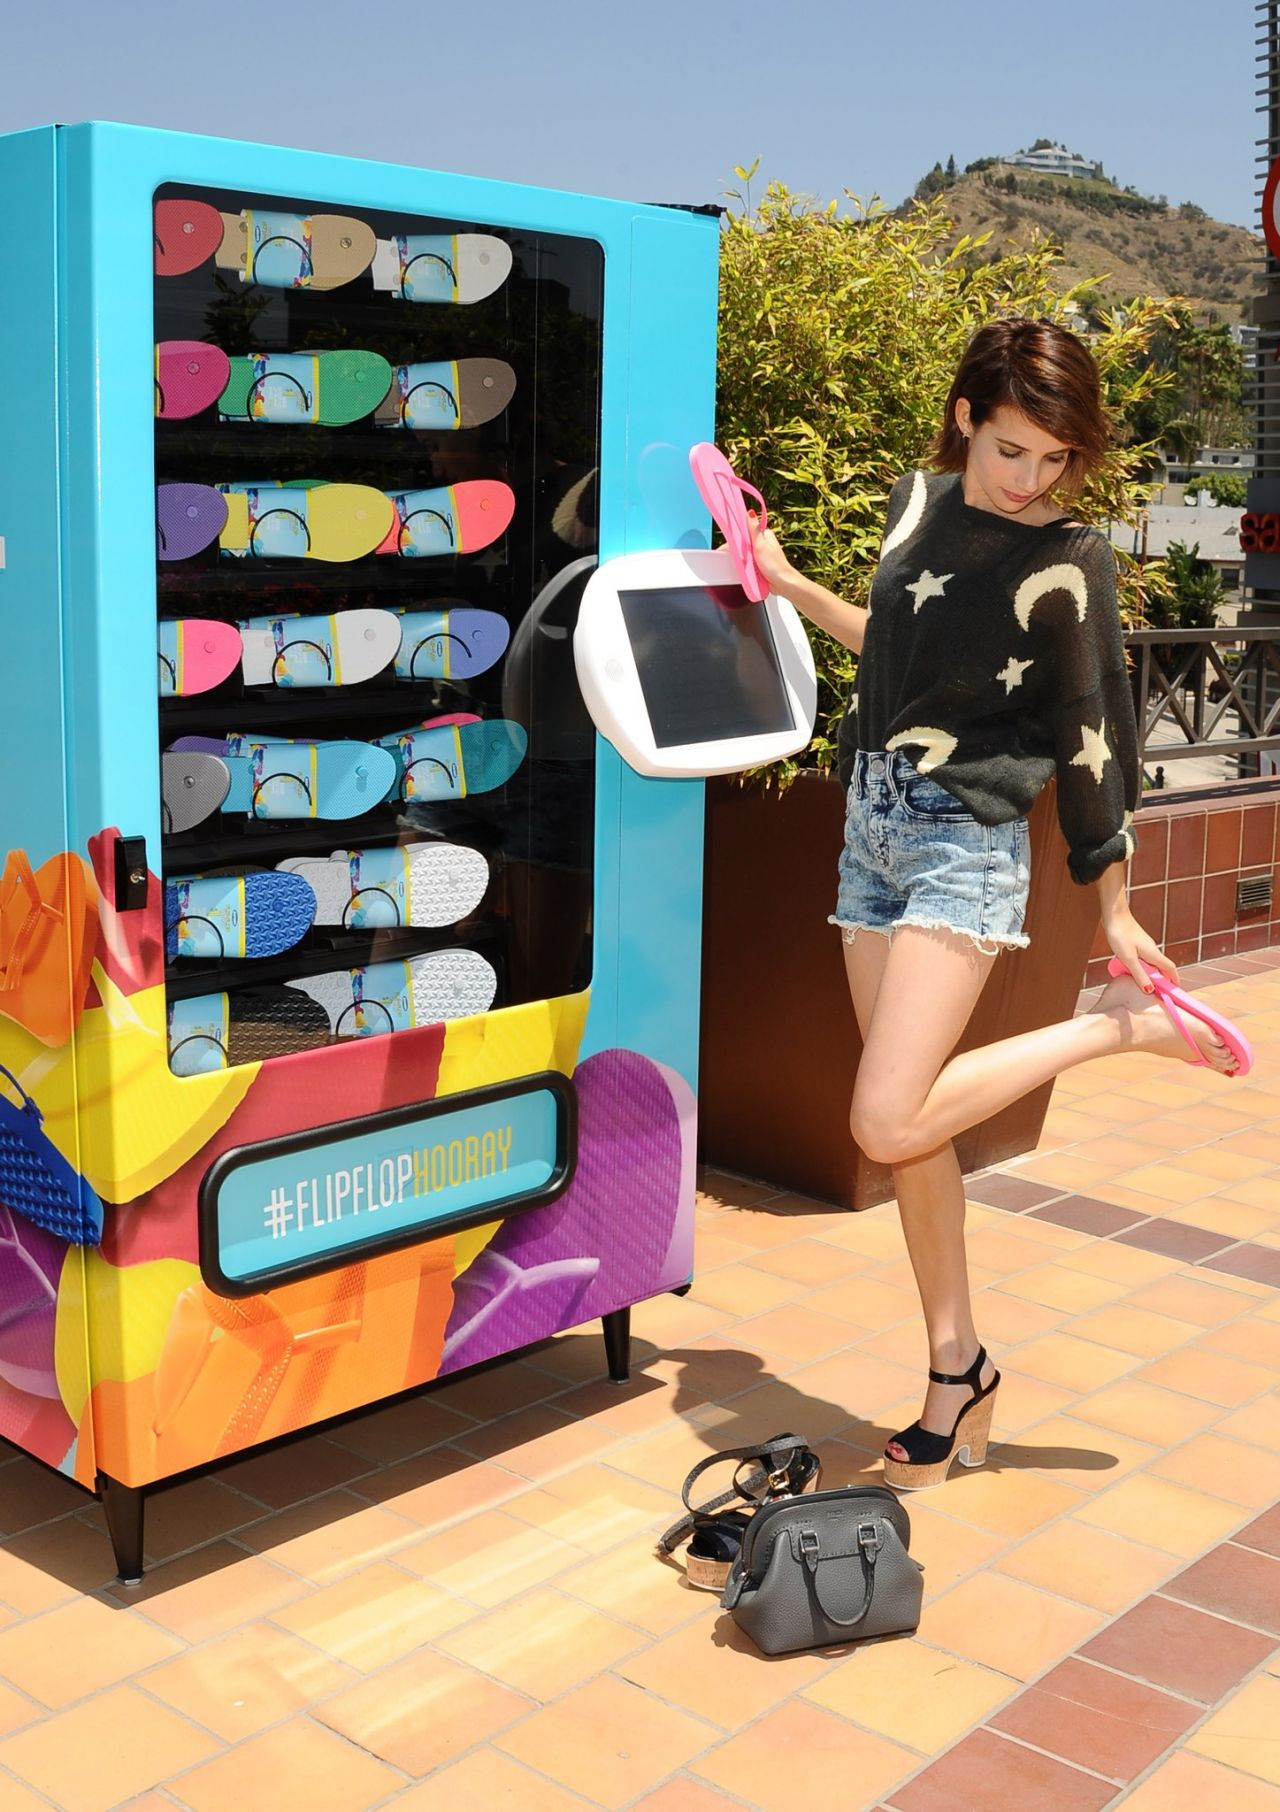 Emma Roberts Snapped Visiting the Old Navy Flip-Flop Vending Machine in Los Angeles - June 2014